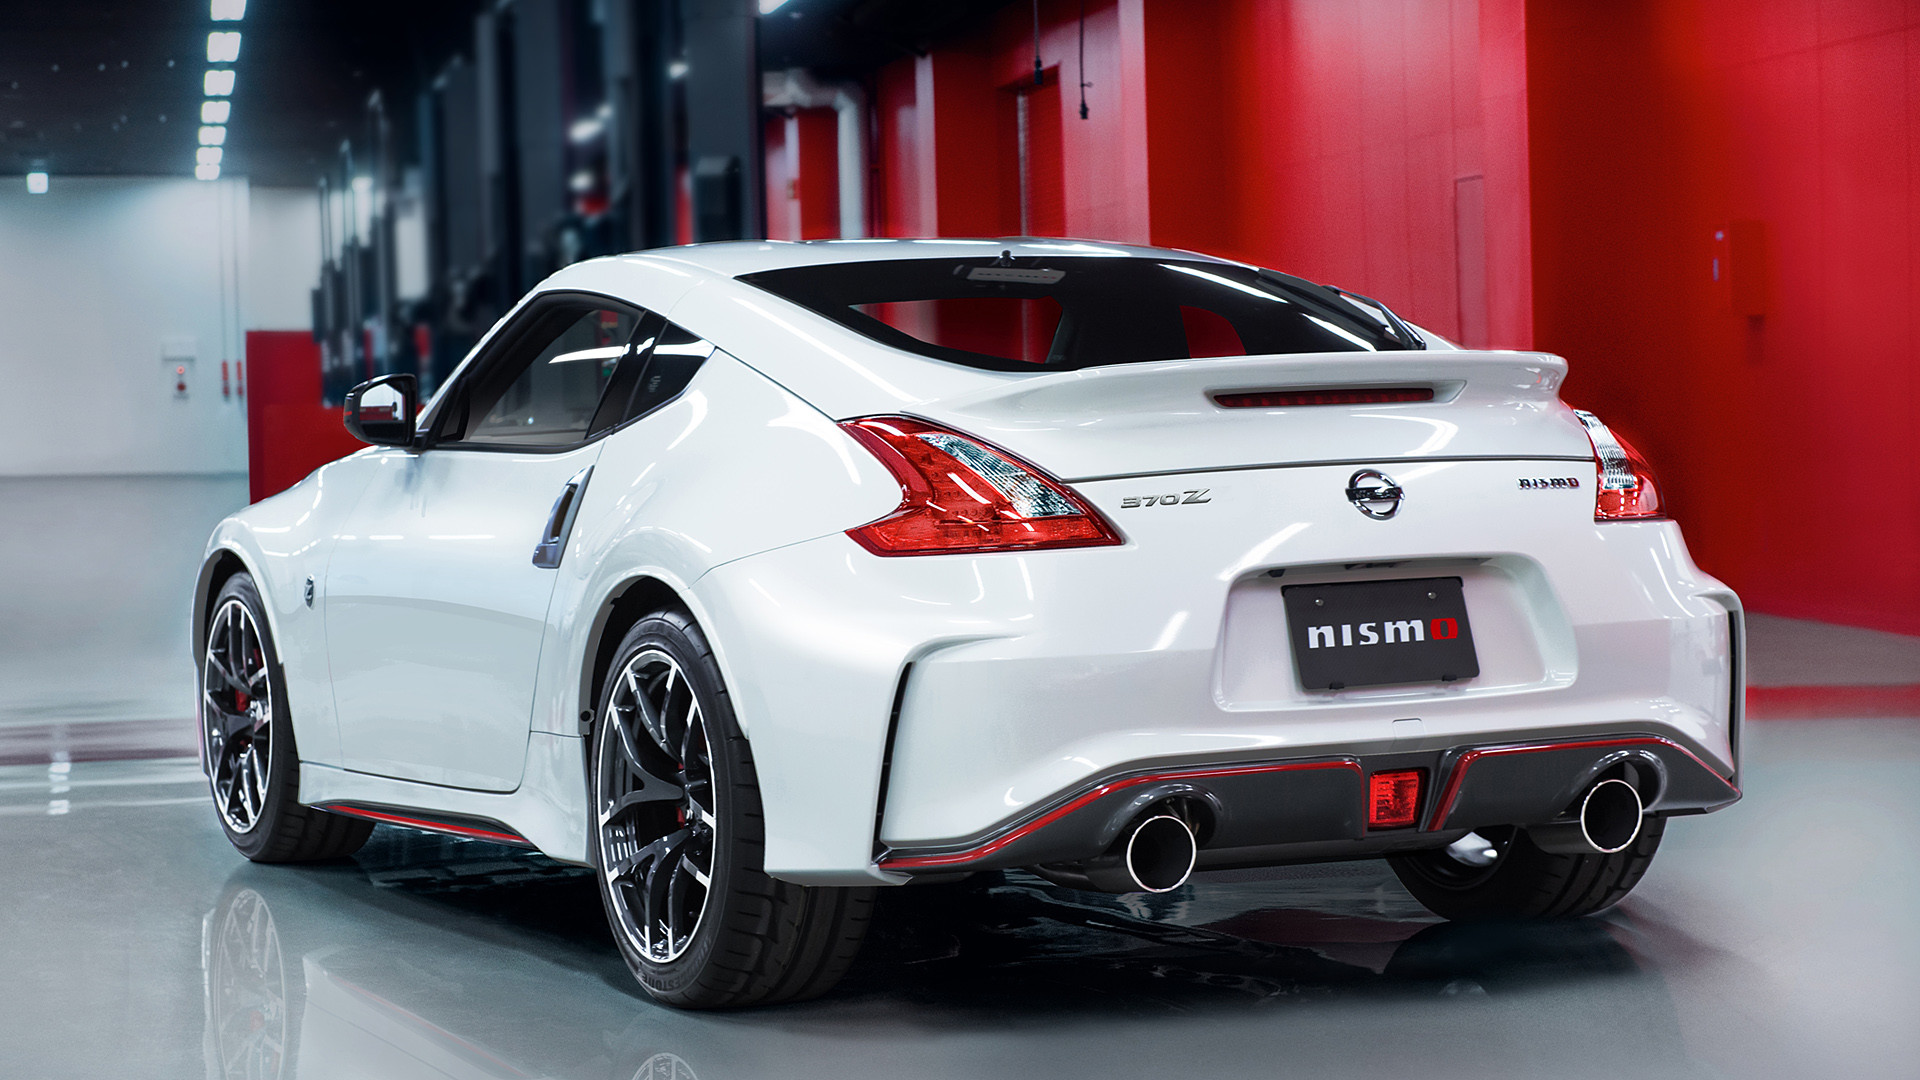 Res: 1920x1080, 2015 Nissan 370Z Nismo picture.